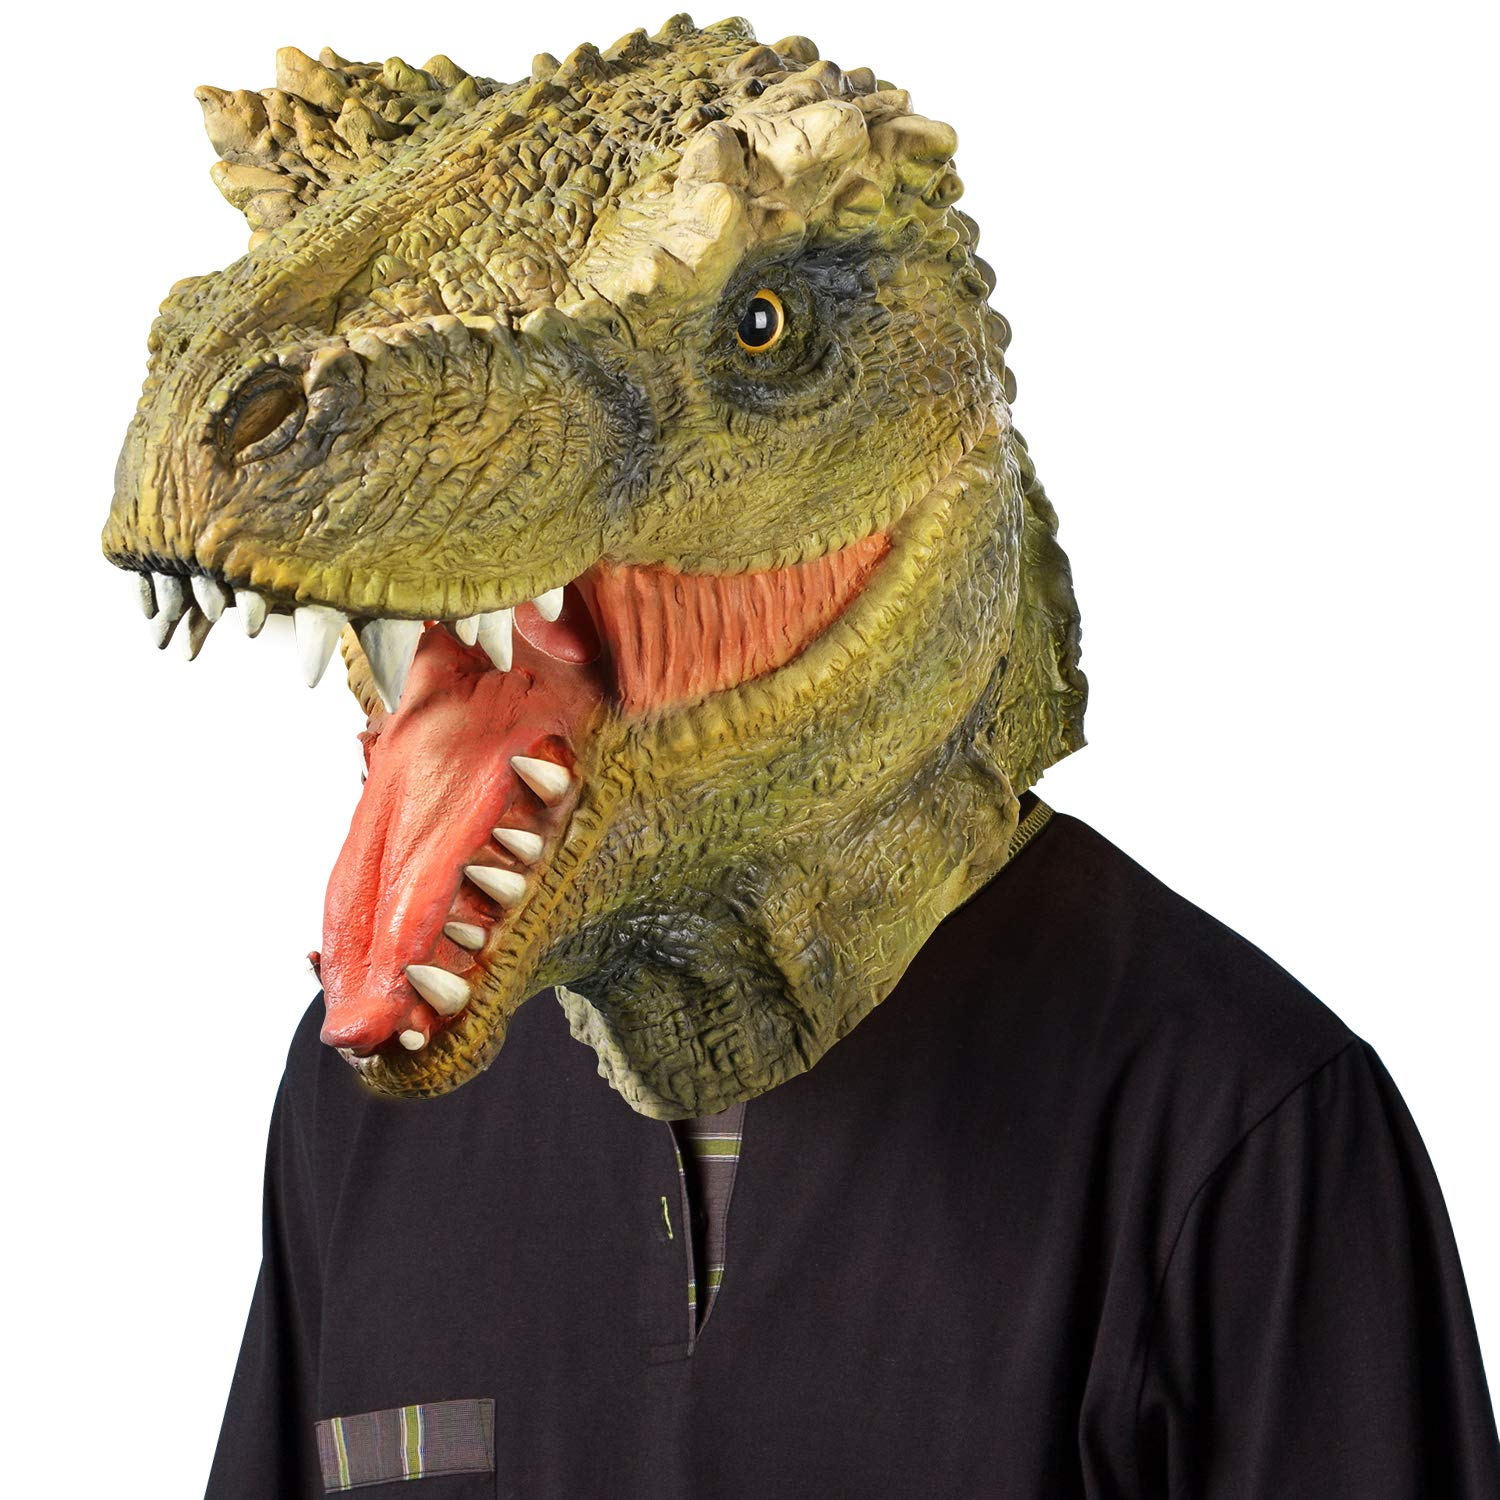 Ylovetoys Halloween Mask Dinosaur Costume Head Mask Novelty Halloween Costume Party Masks Funny Latex Animal Head Mask